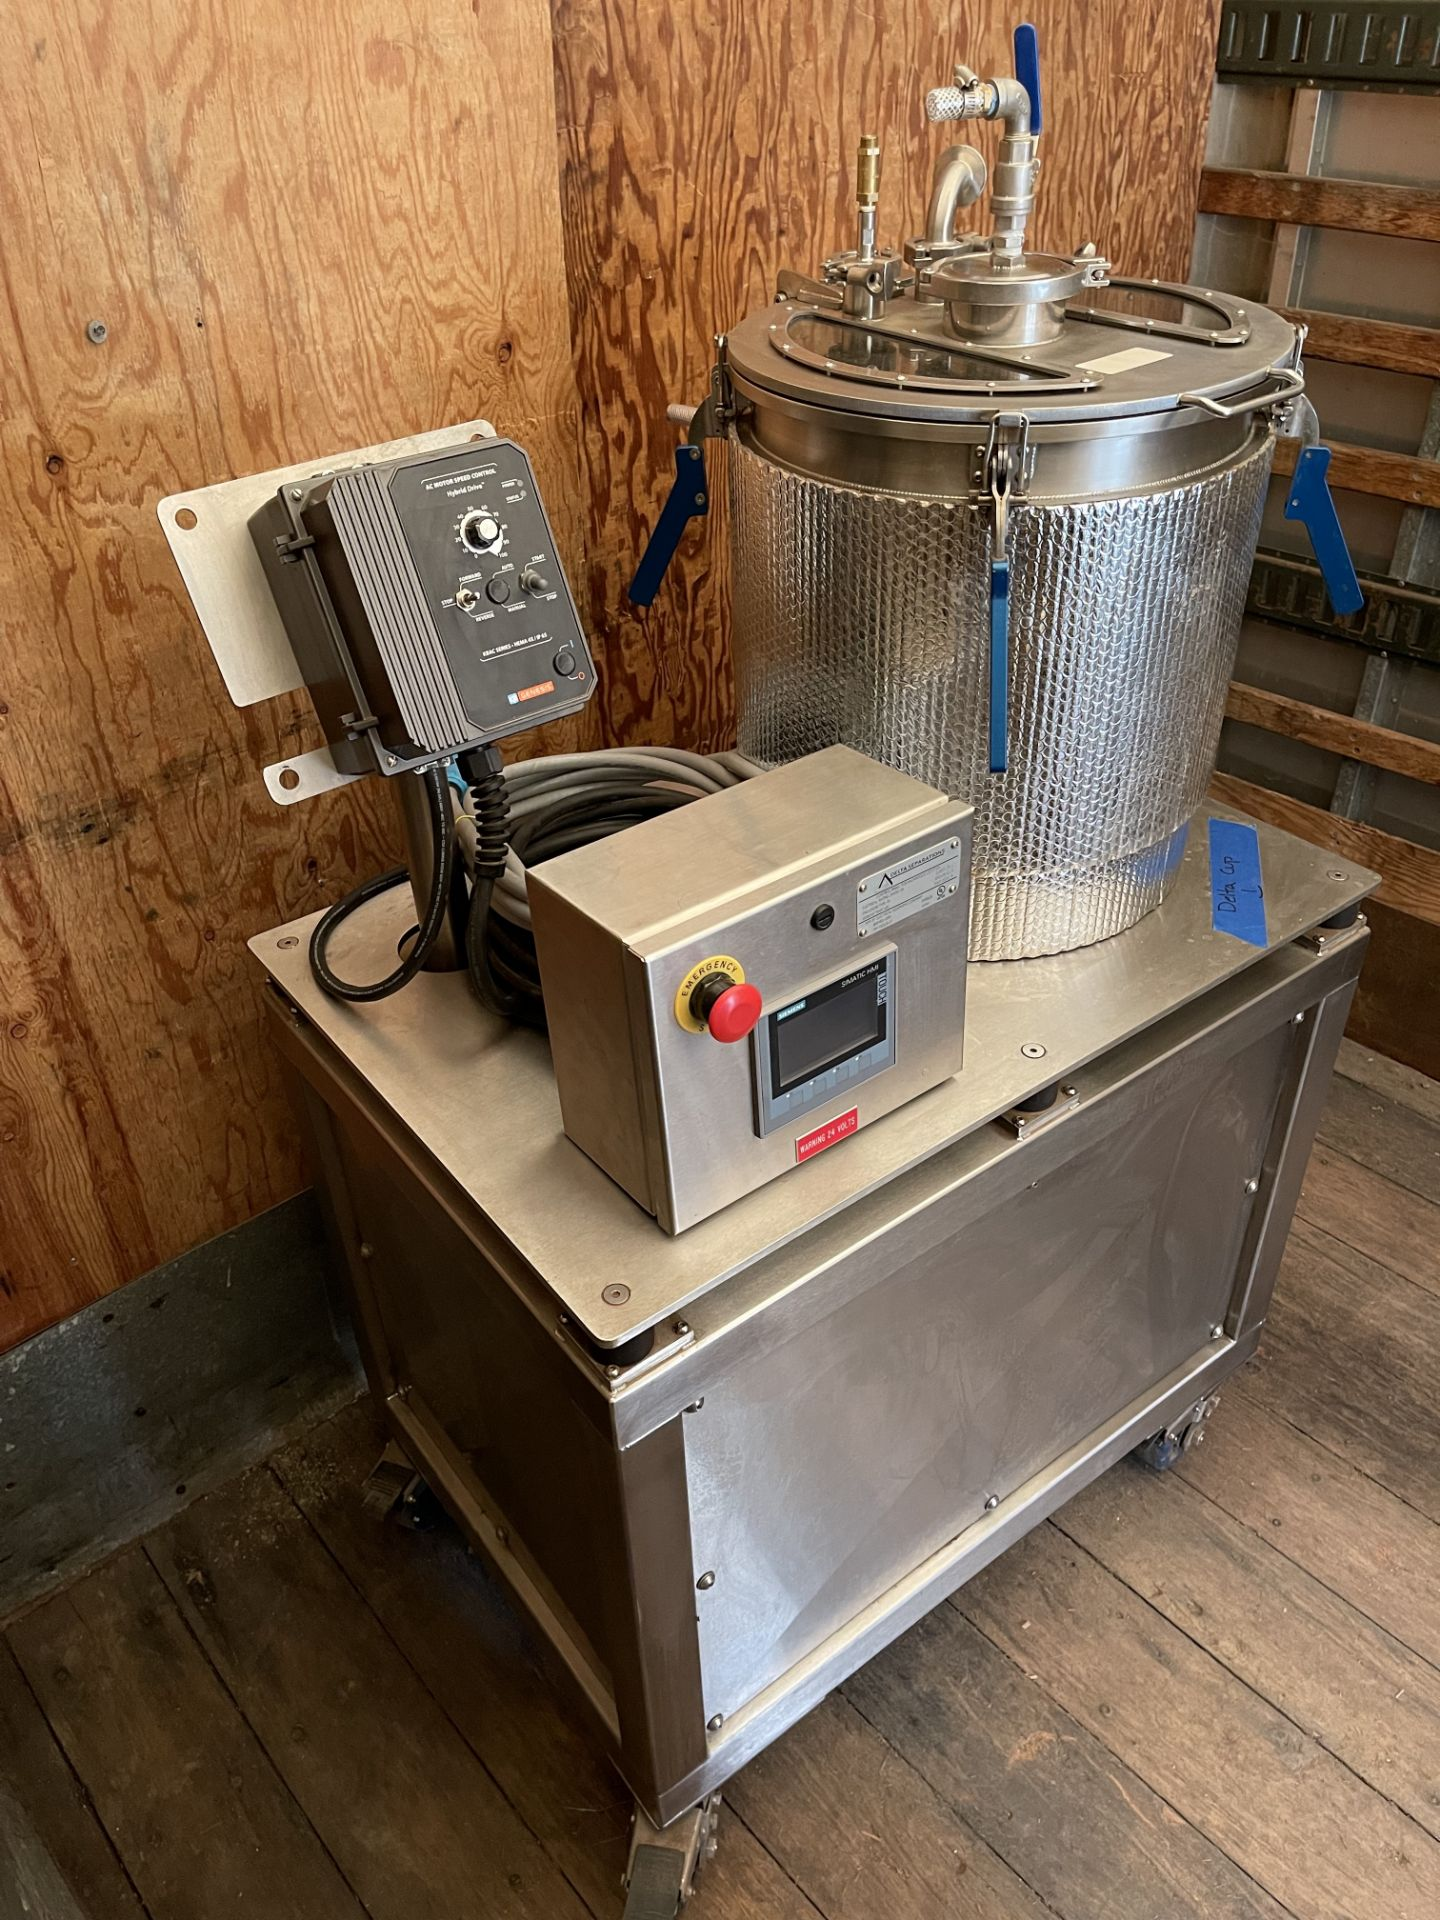 Used- Delta Separations CUP-15 Ethanol Extraction System. Capacity: 8-14 lbs/batch w/ (3) Kegs - Image 14 of 22